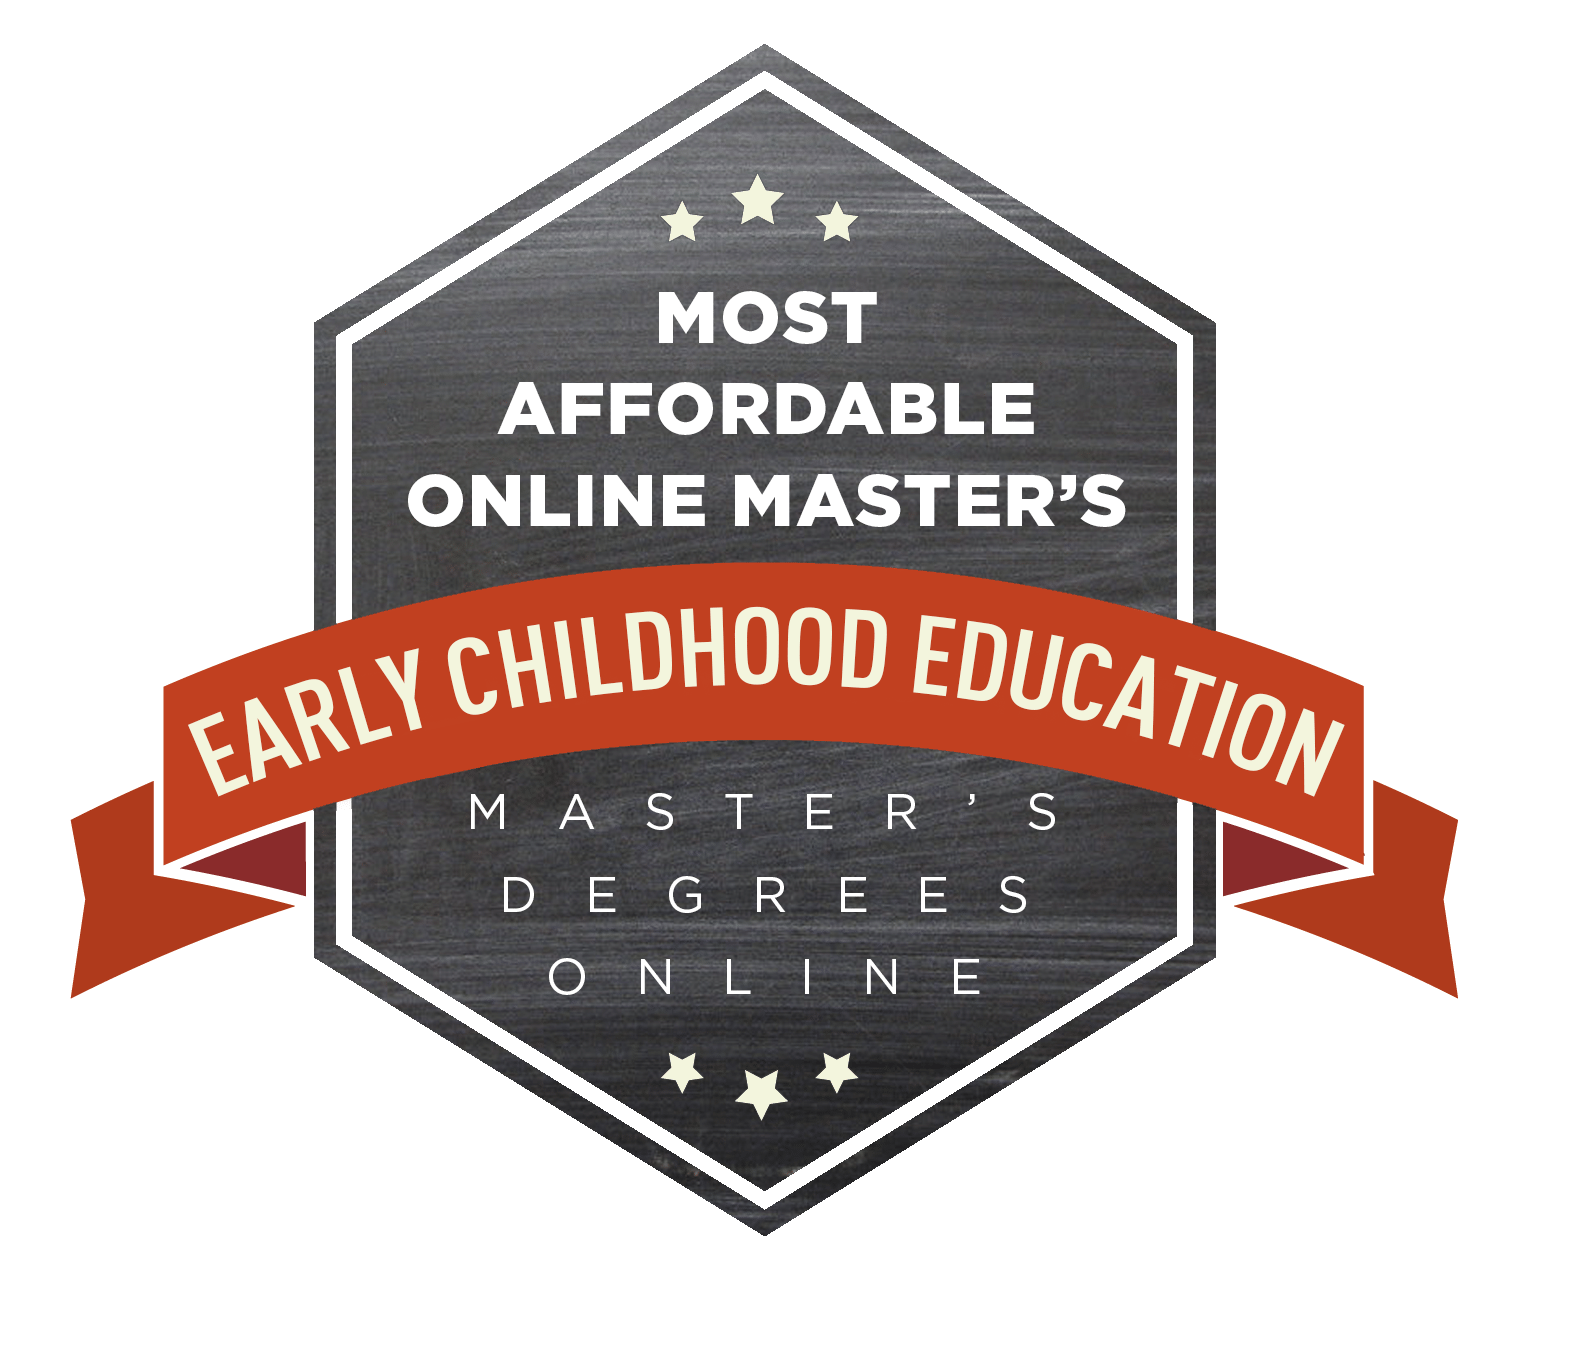 15 Most Affordable Online Masters In Early Childhood Education